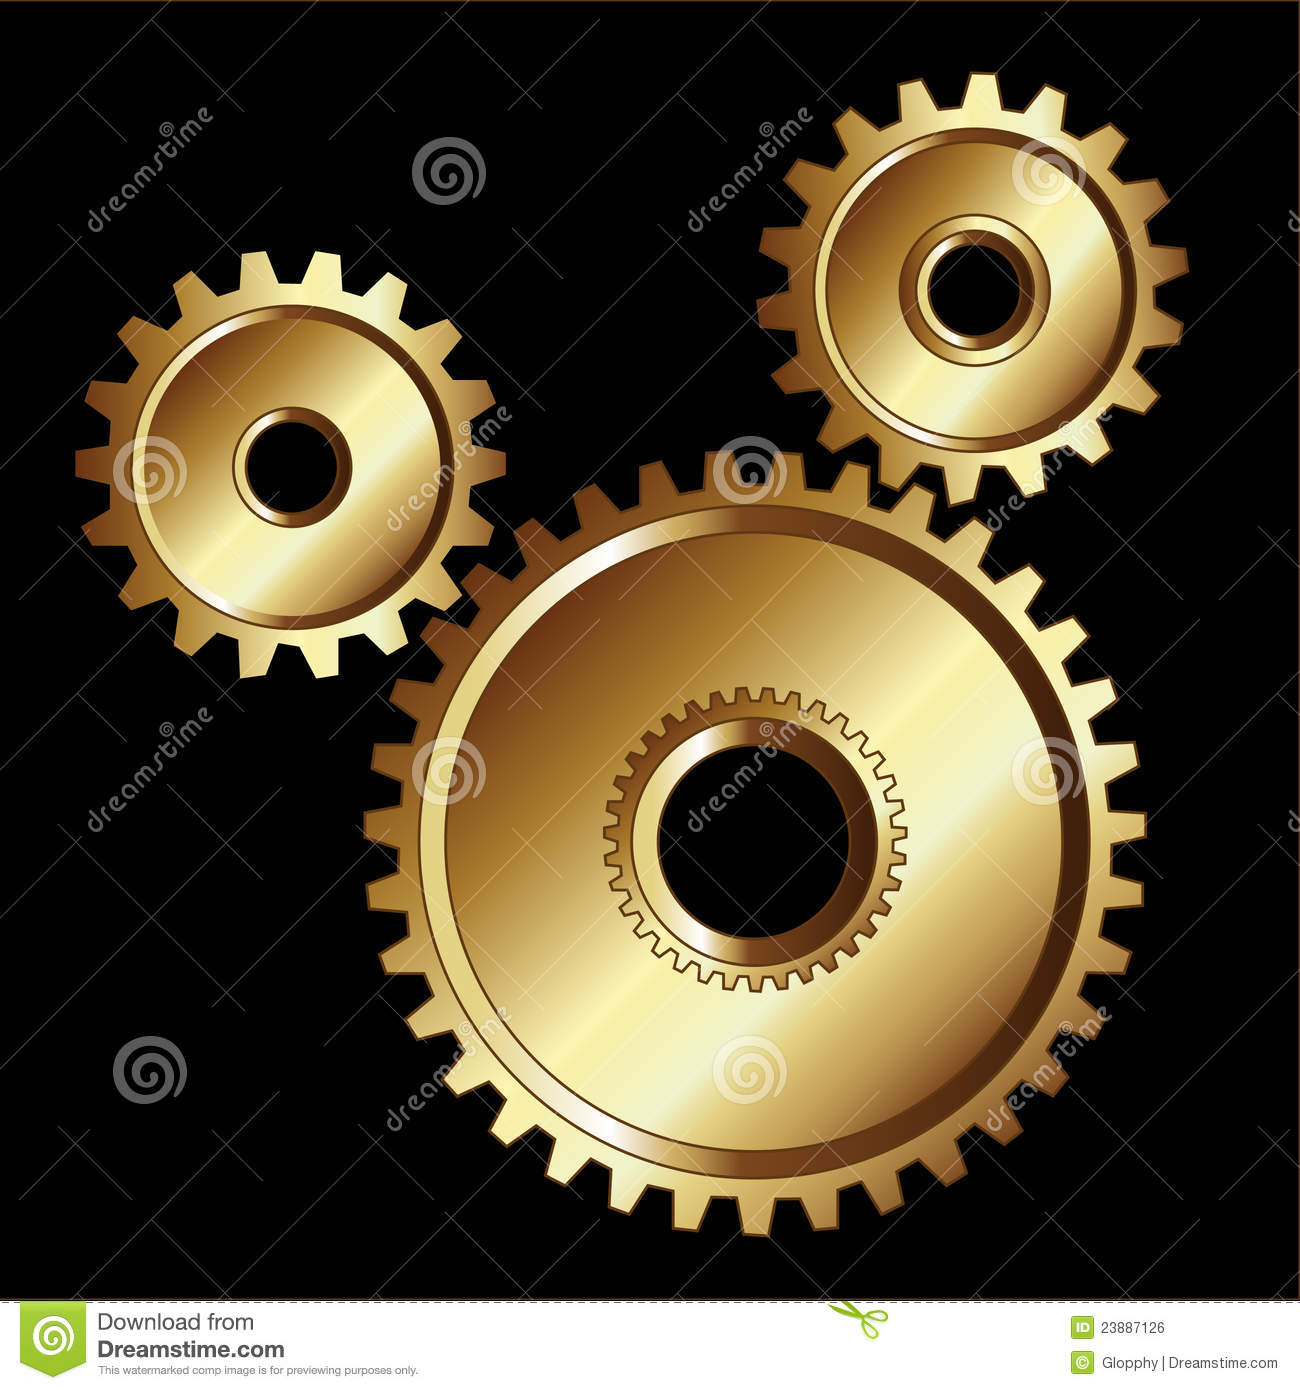 Gold Gears Machinery Tools Royalty Free Stock Image - Image: 23887126